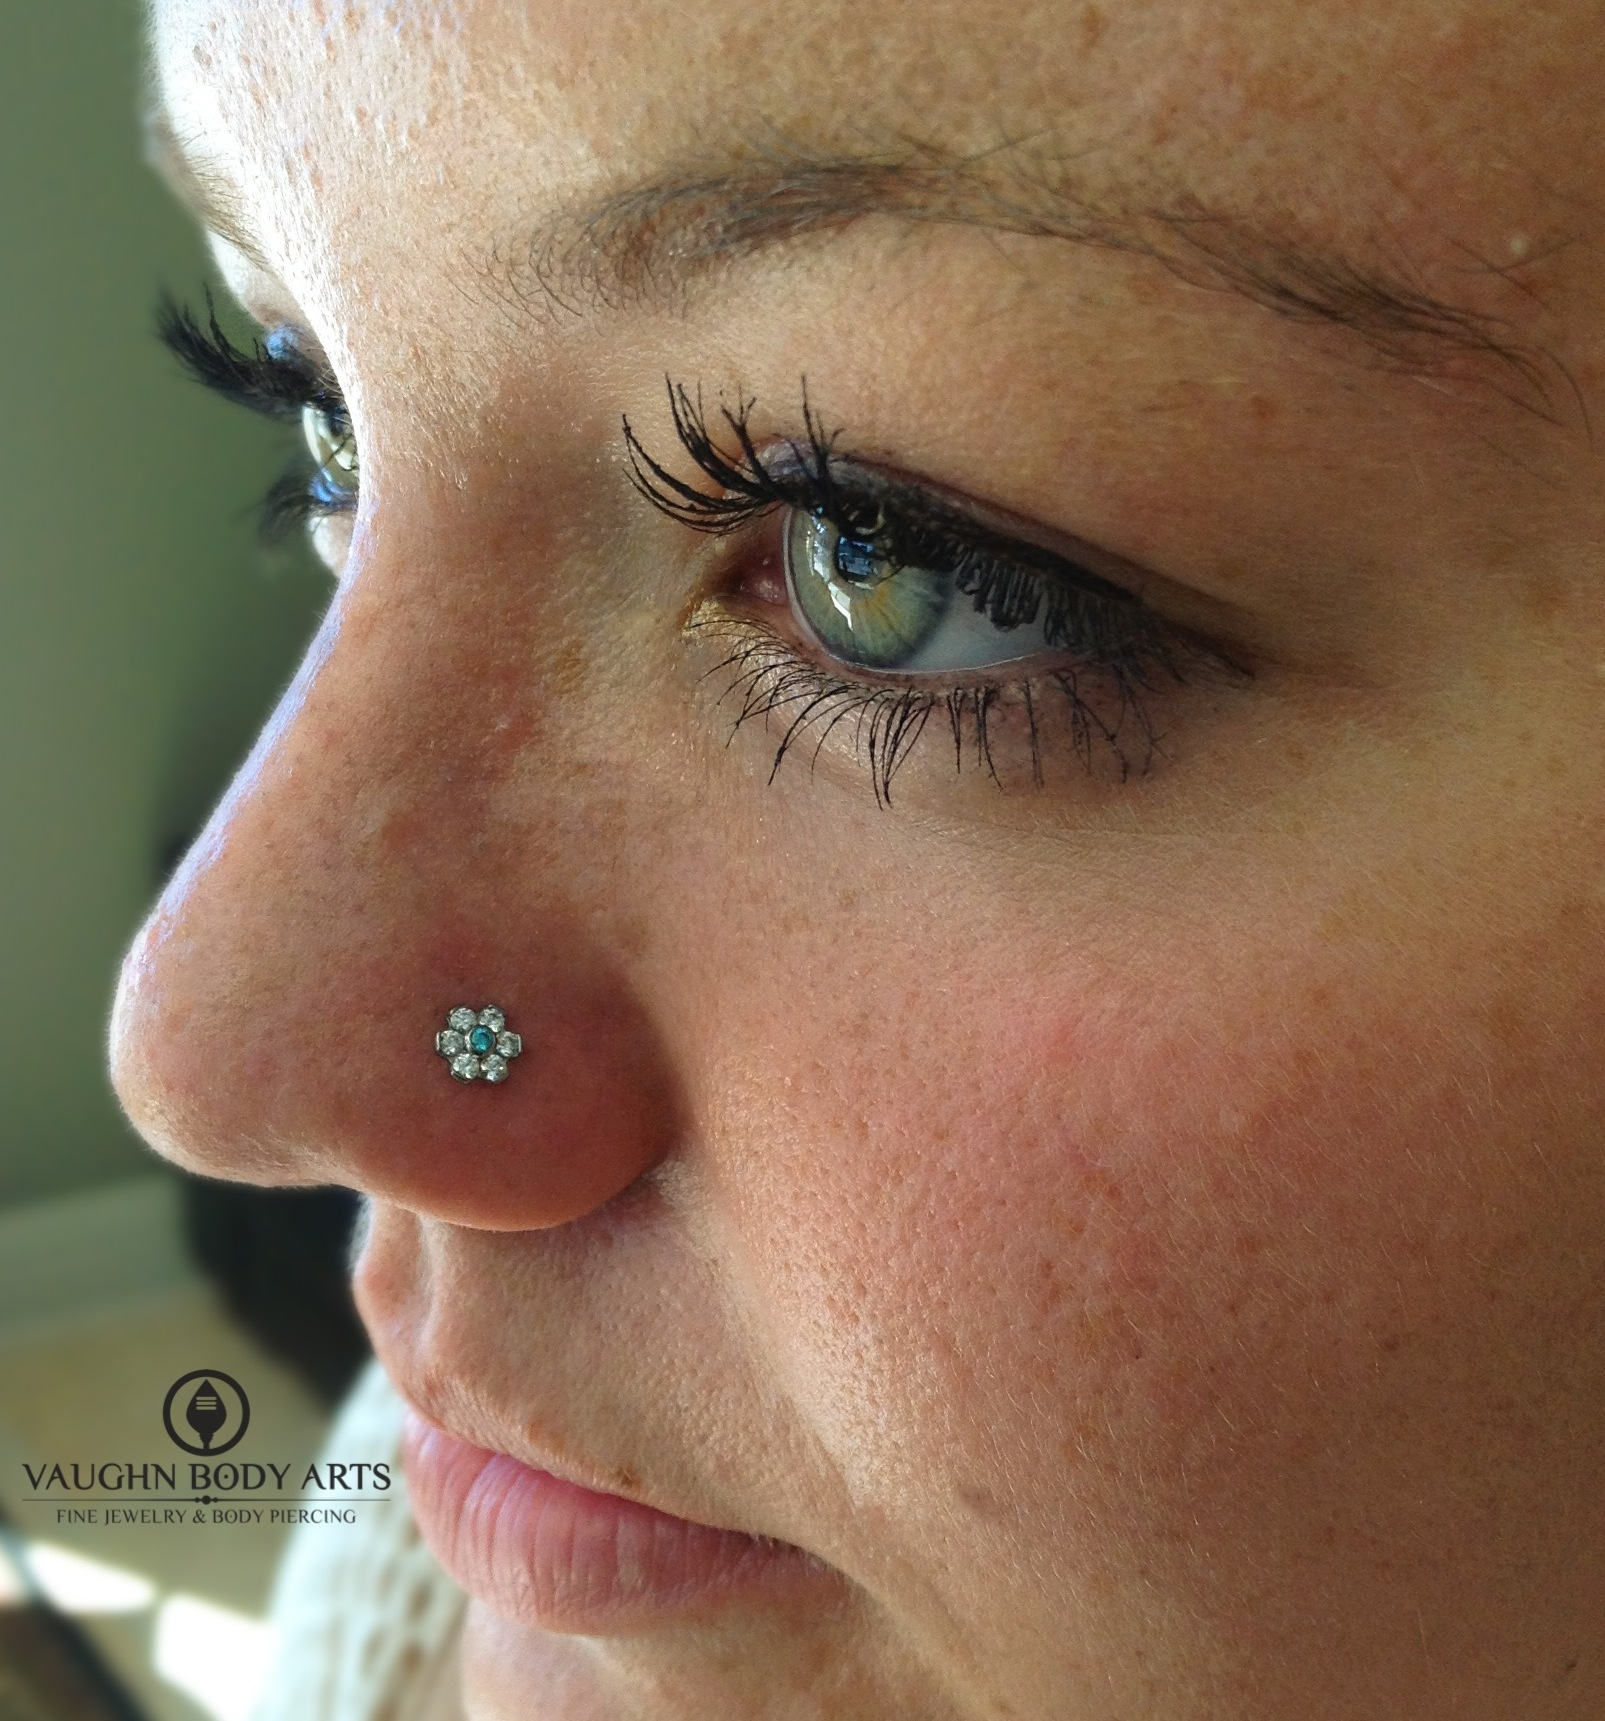 Nostril piercing with titanium jewelry from Industrial Strength.